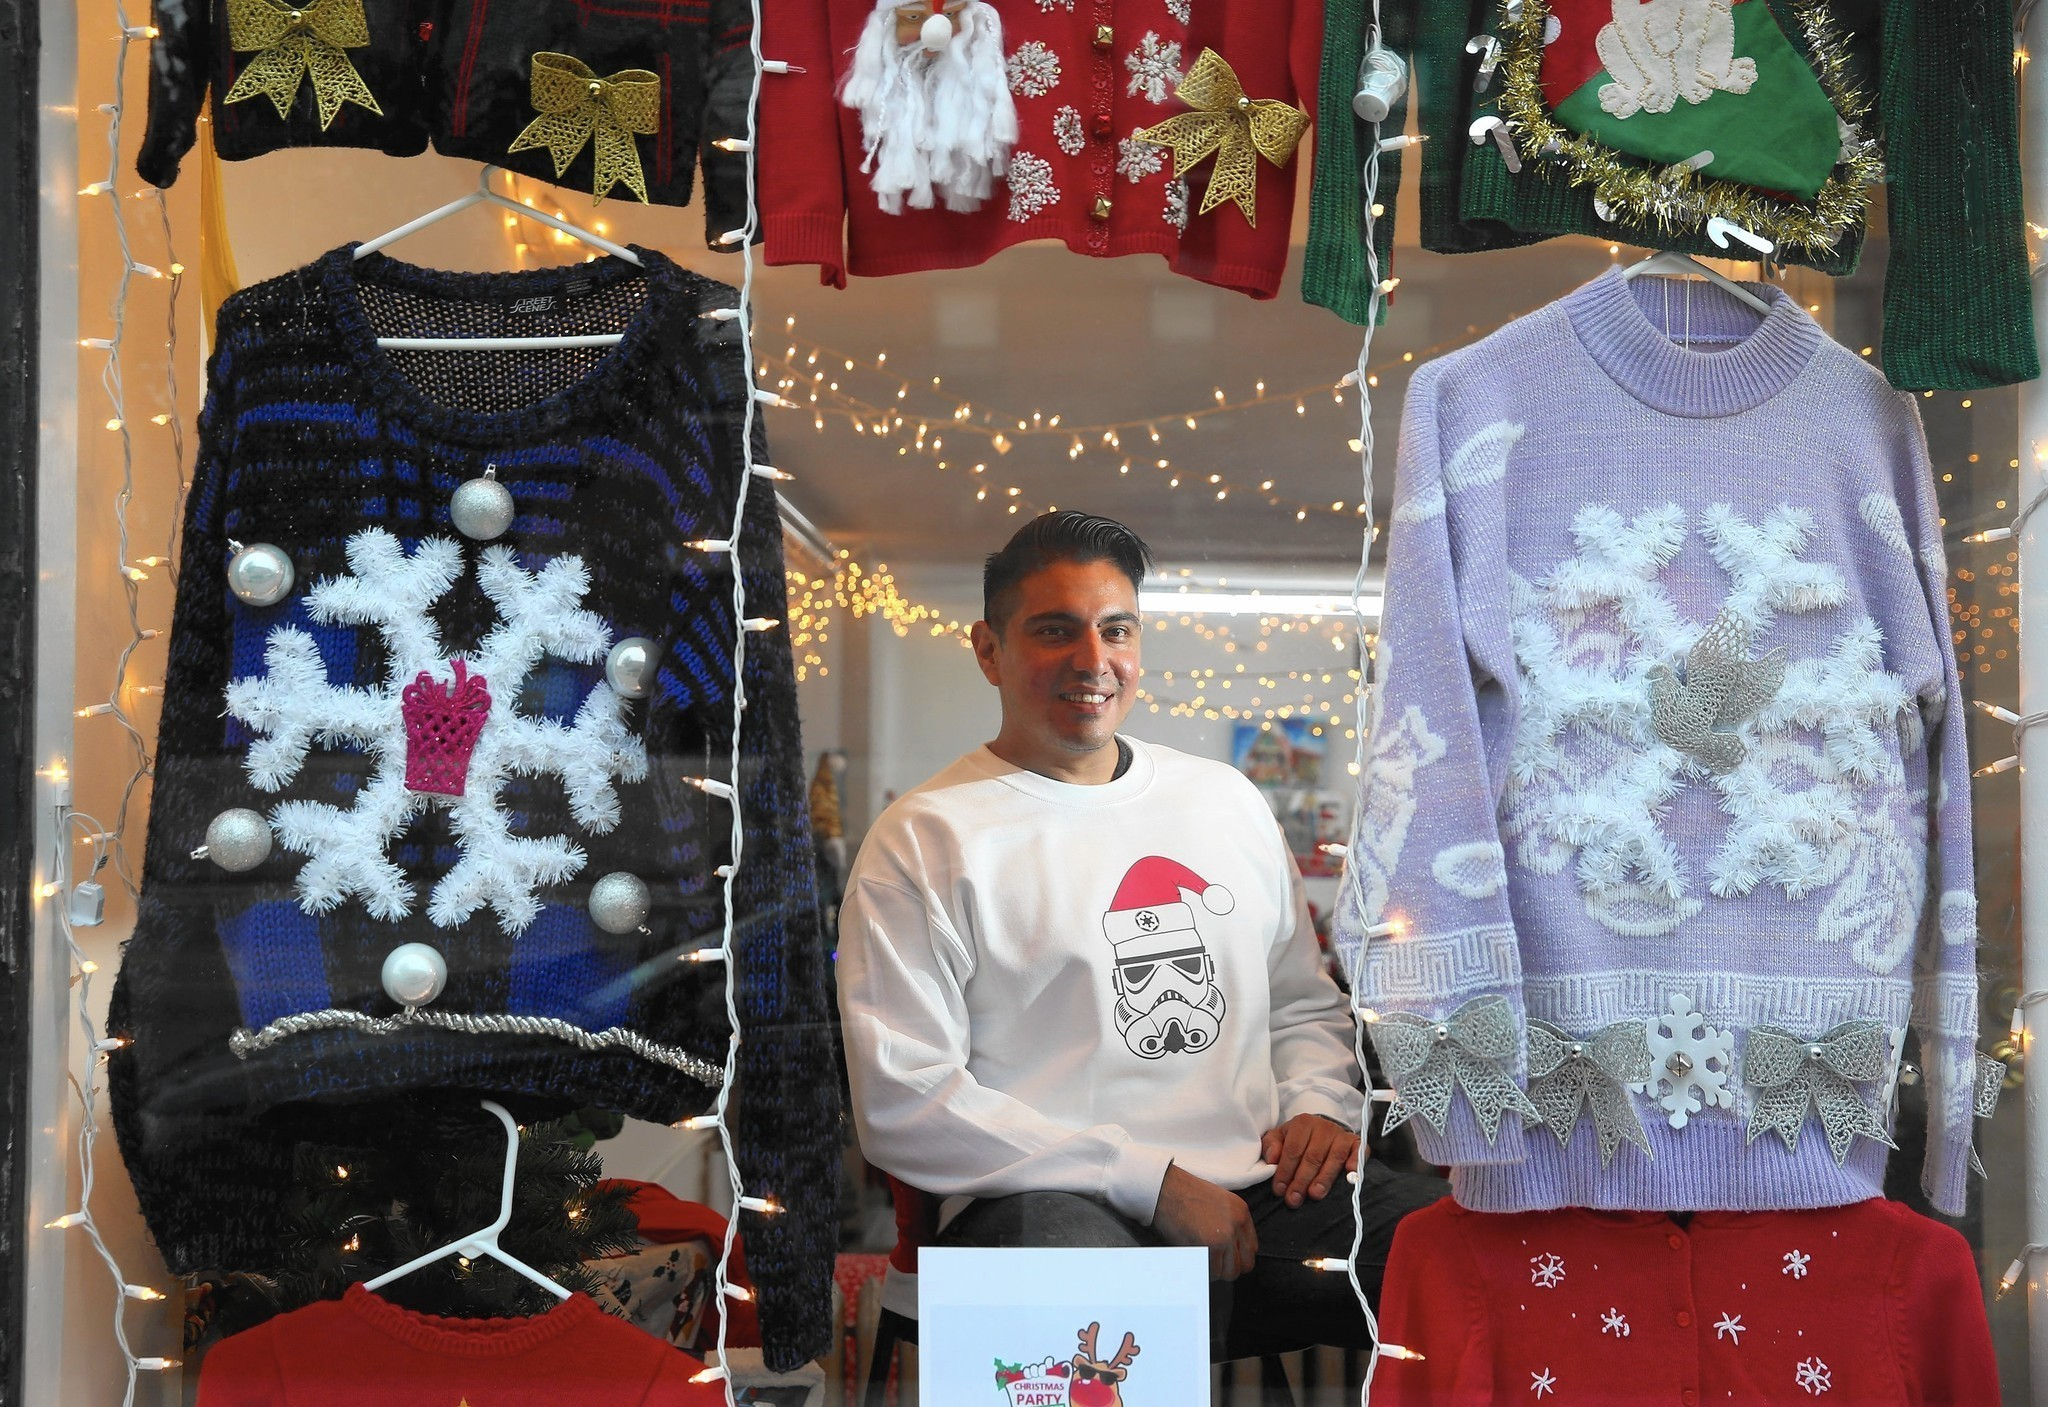 Ugly Christmas sweaters bask in mainstream appeal - Chicago Tribune